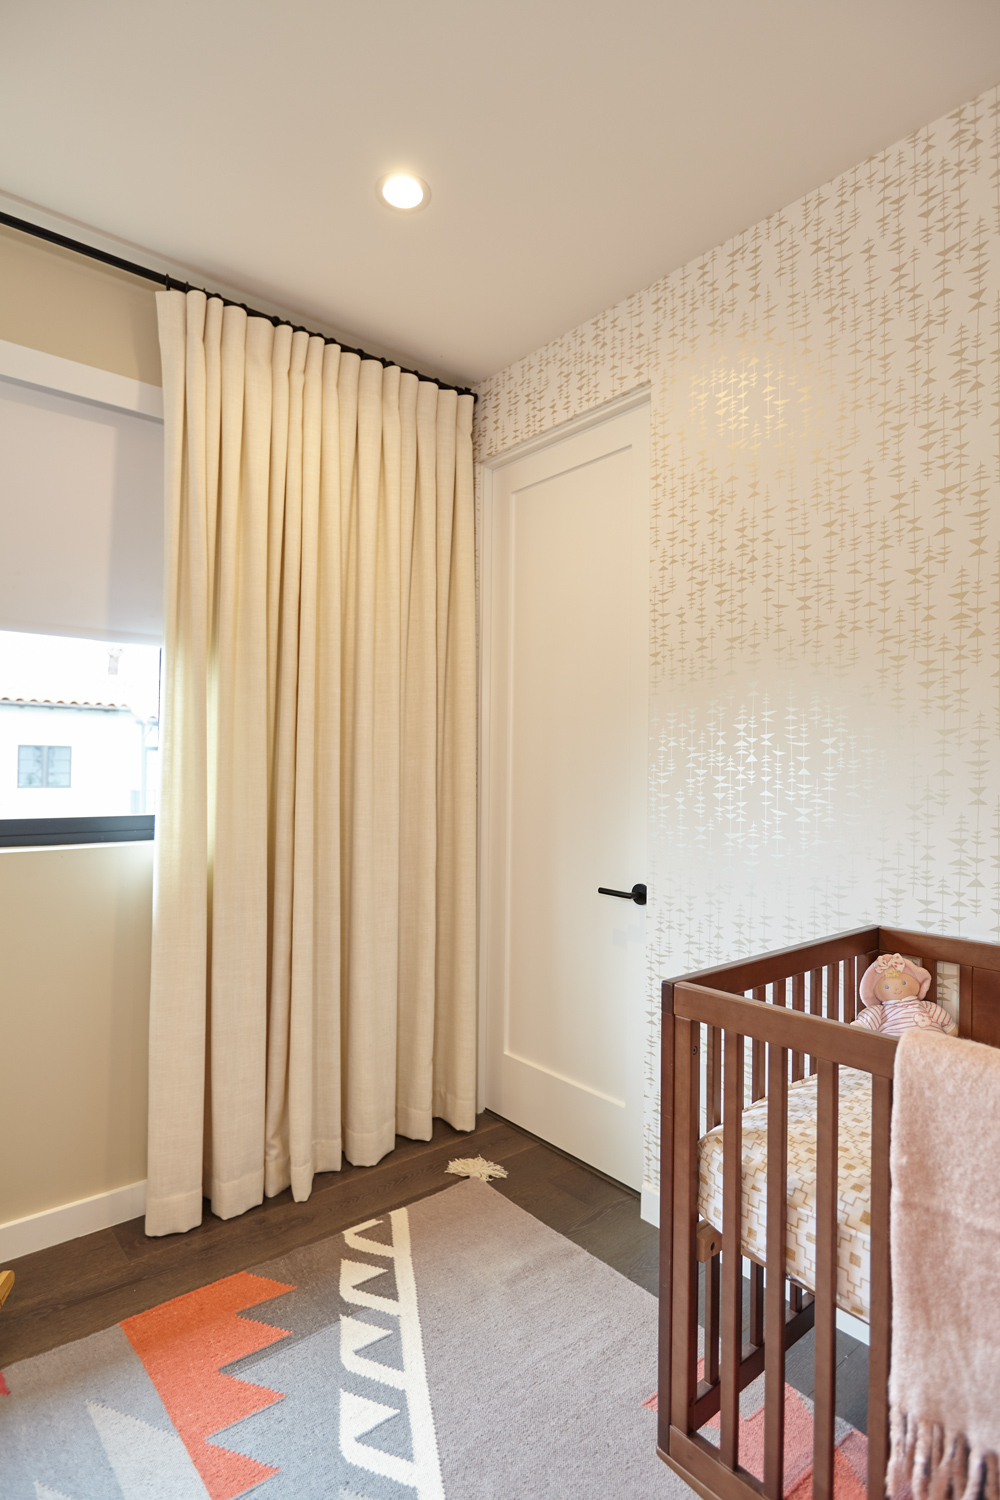 Ilona-House-16-Kids-Room-2-1000x1500.jpg